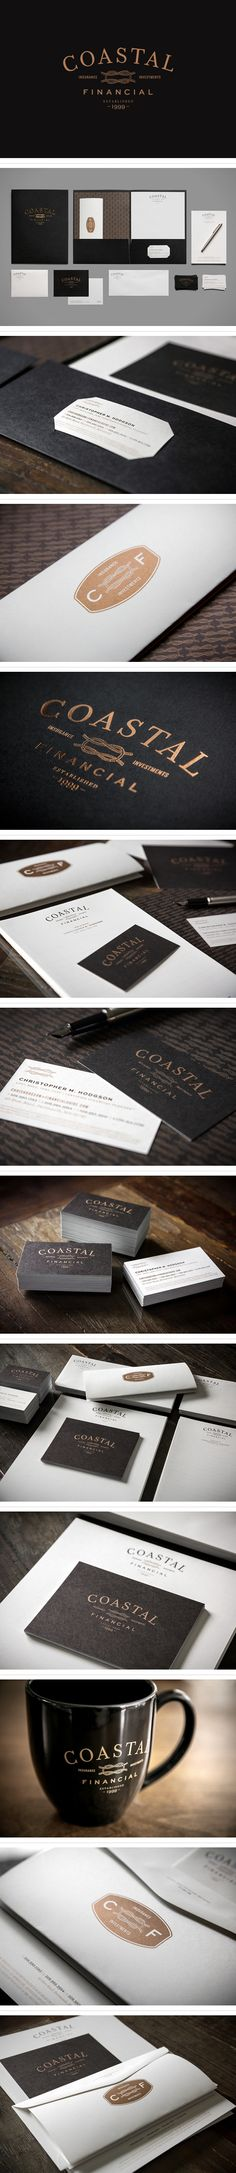 Coastal Financial identity by Blue Rock